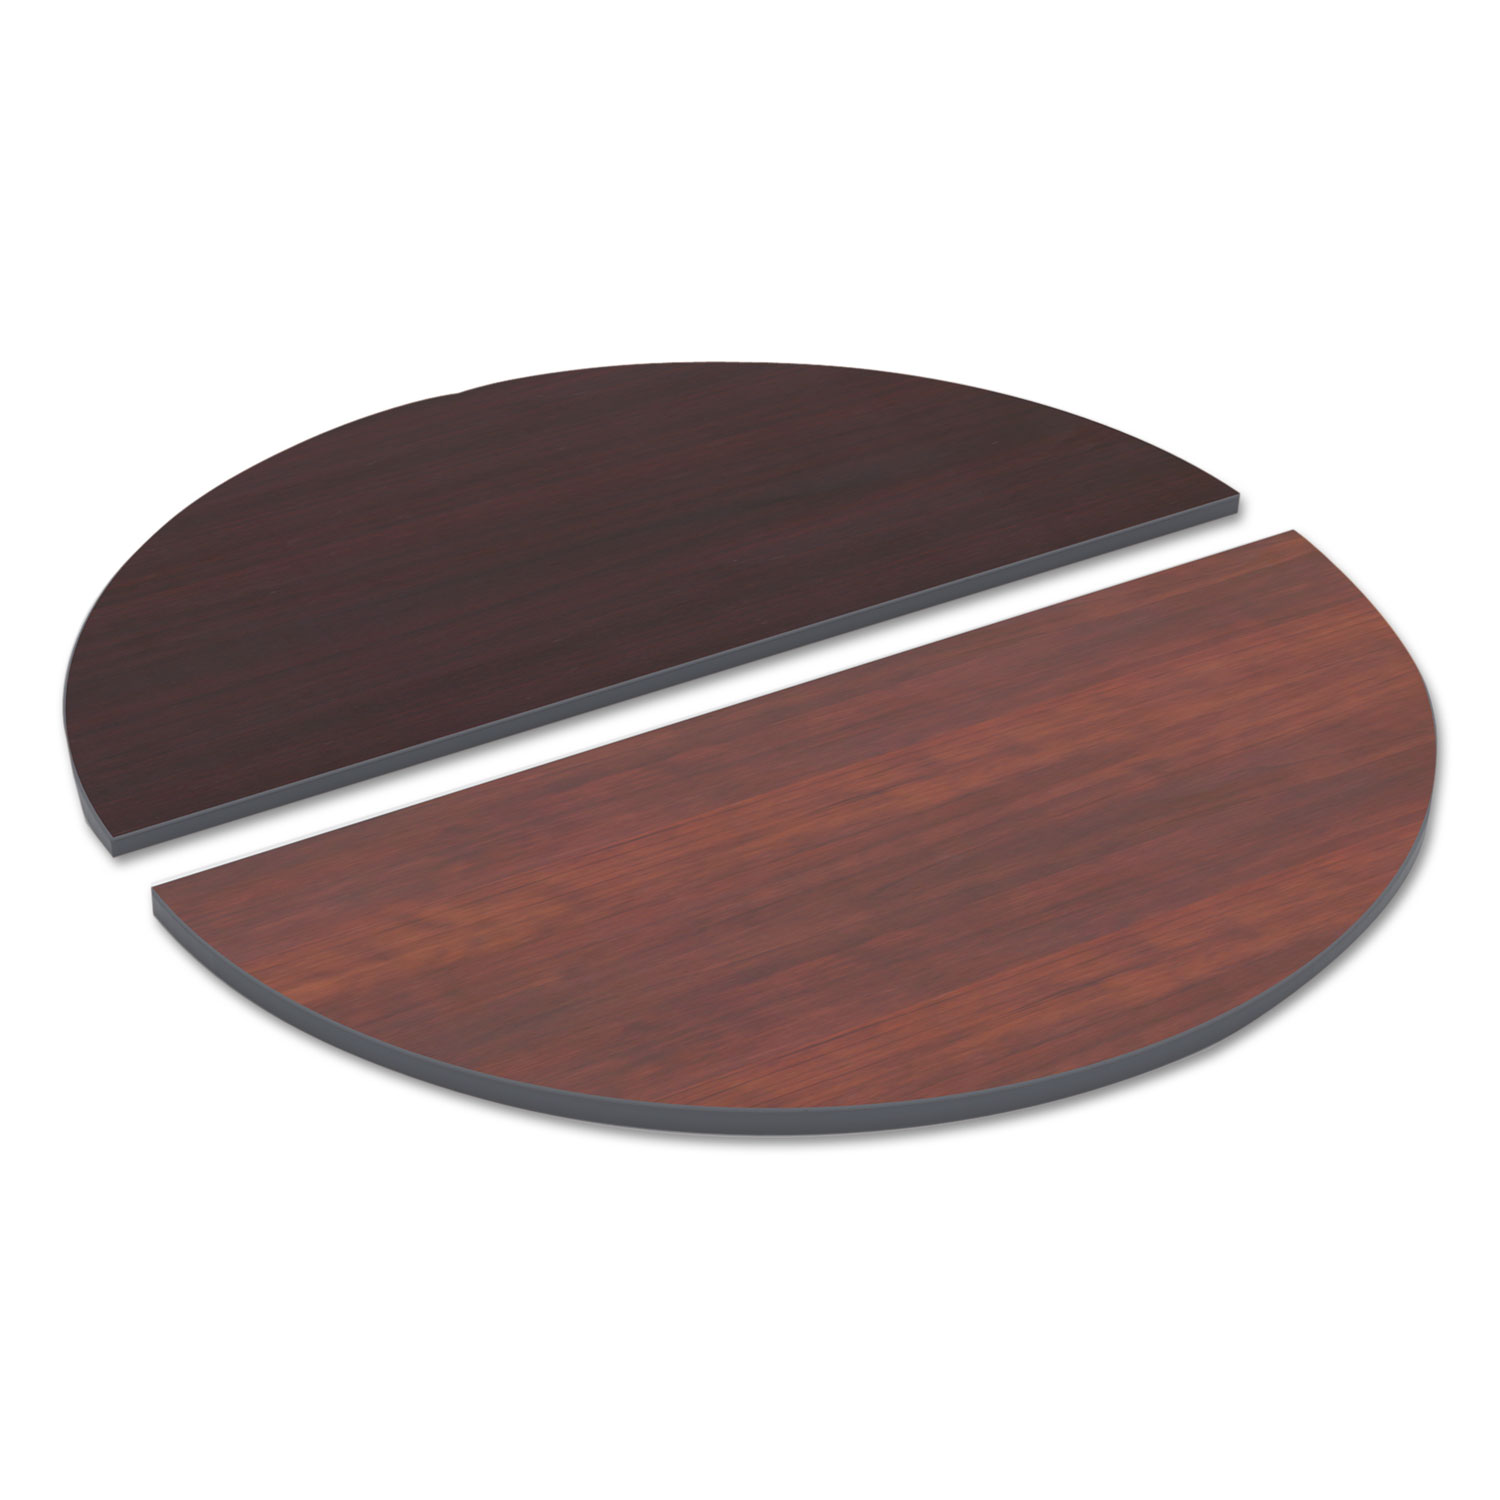 Round Table Tops Reversible Laminate Table Top Half Round 48w X 24d Medium Cherry Mahogany